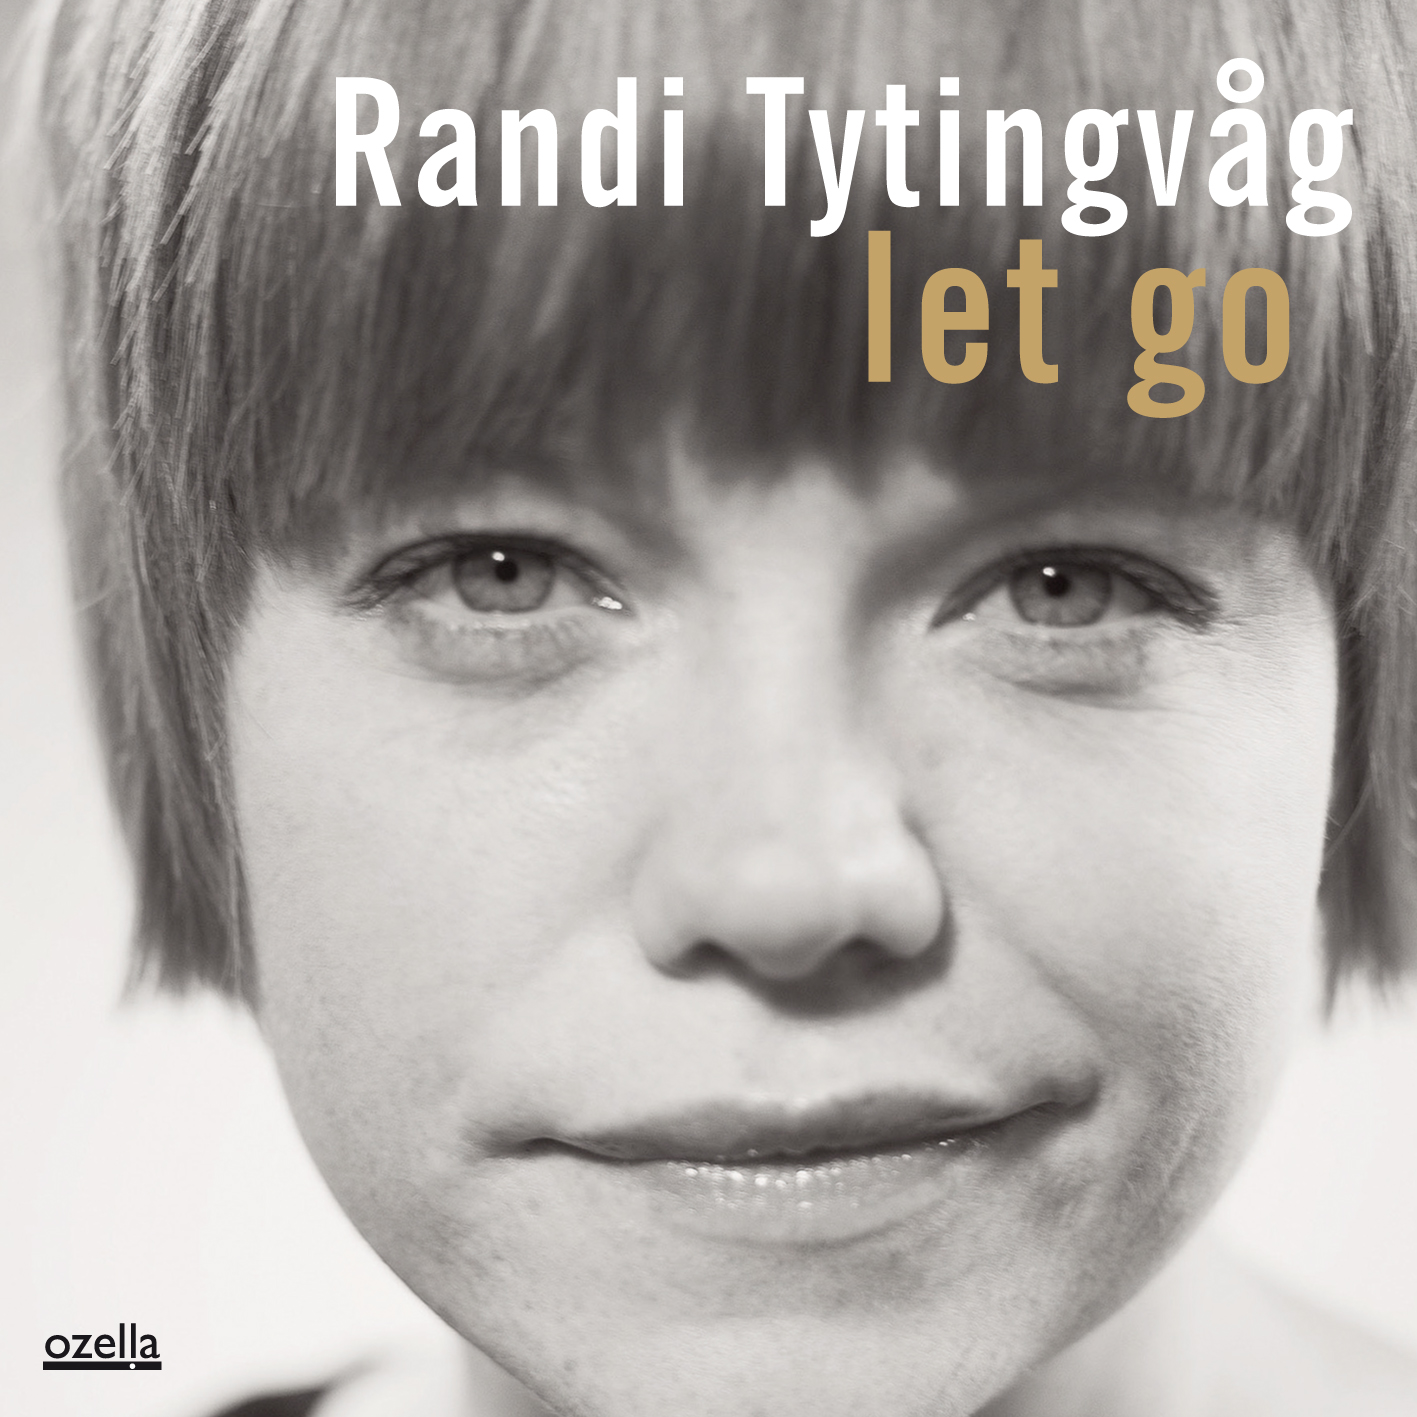 Let Go- 2006 (RTM/Mudi) Relaunched in Germany in 2010